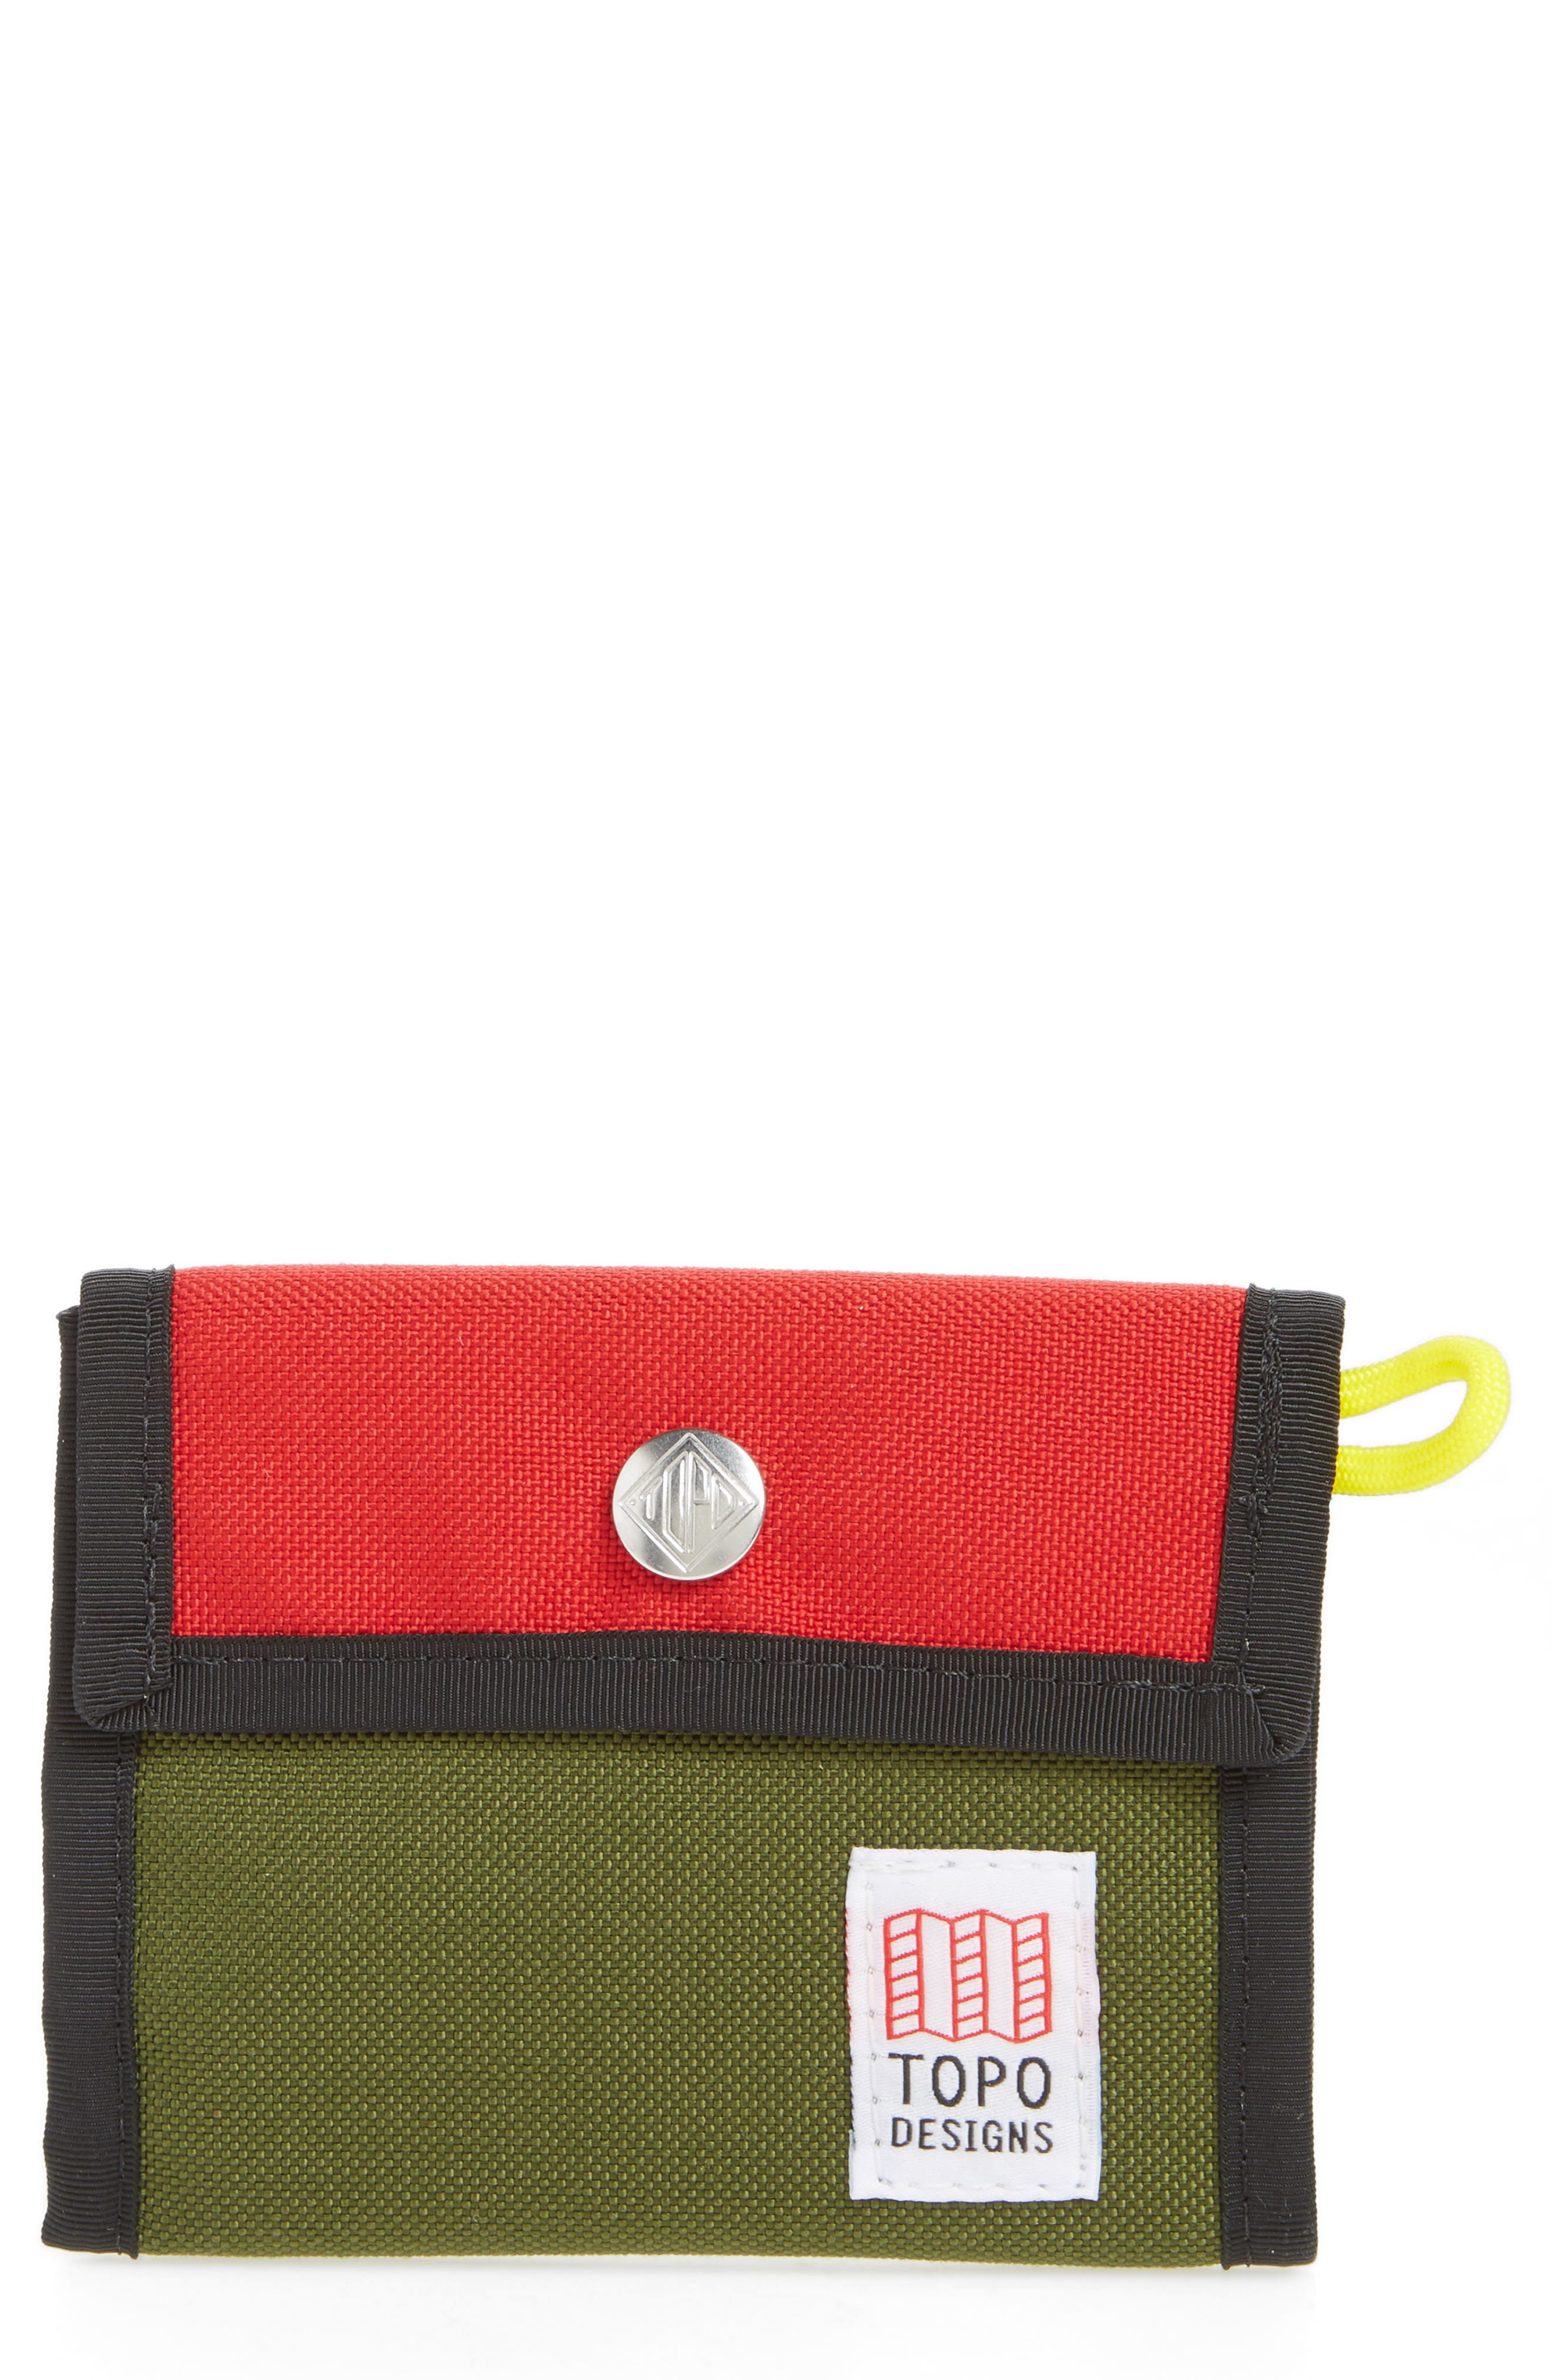 Snap Wallet,                             Main thumbnail 1, color,                             Red/ Olive